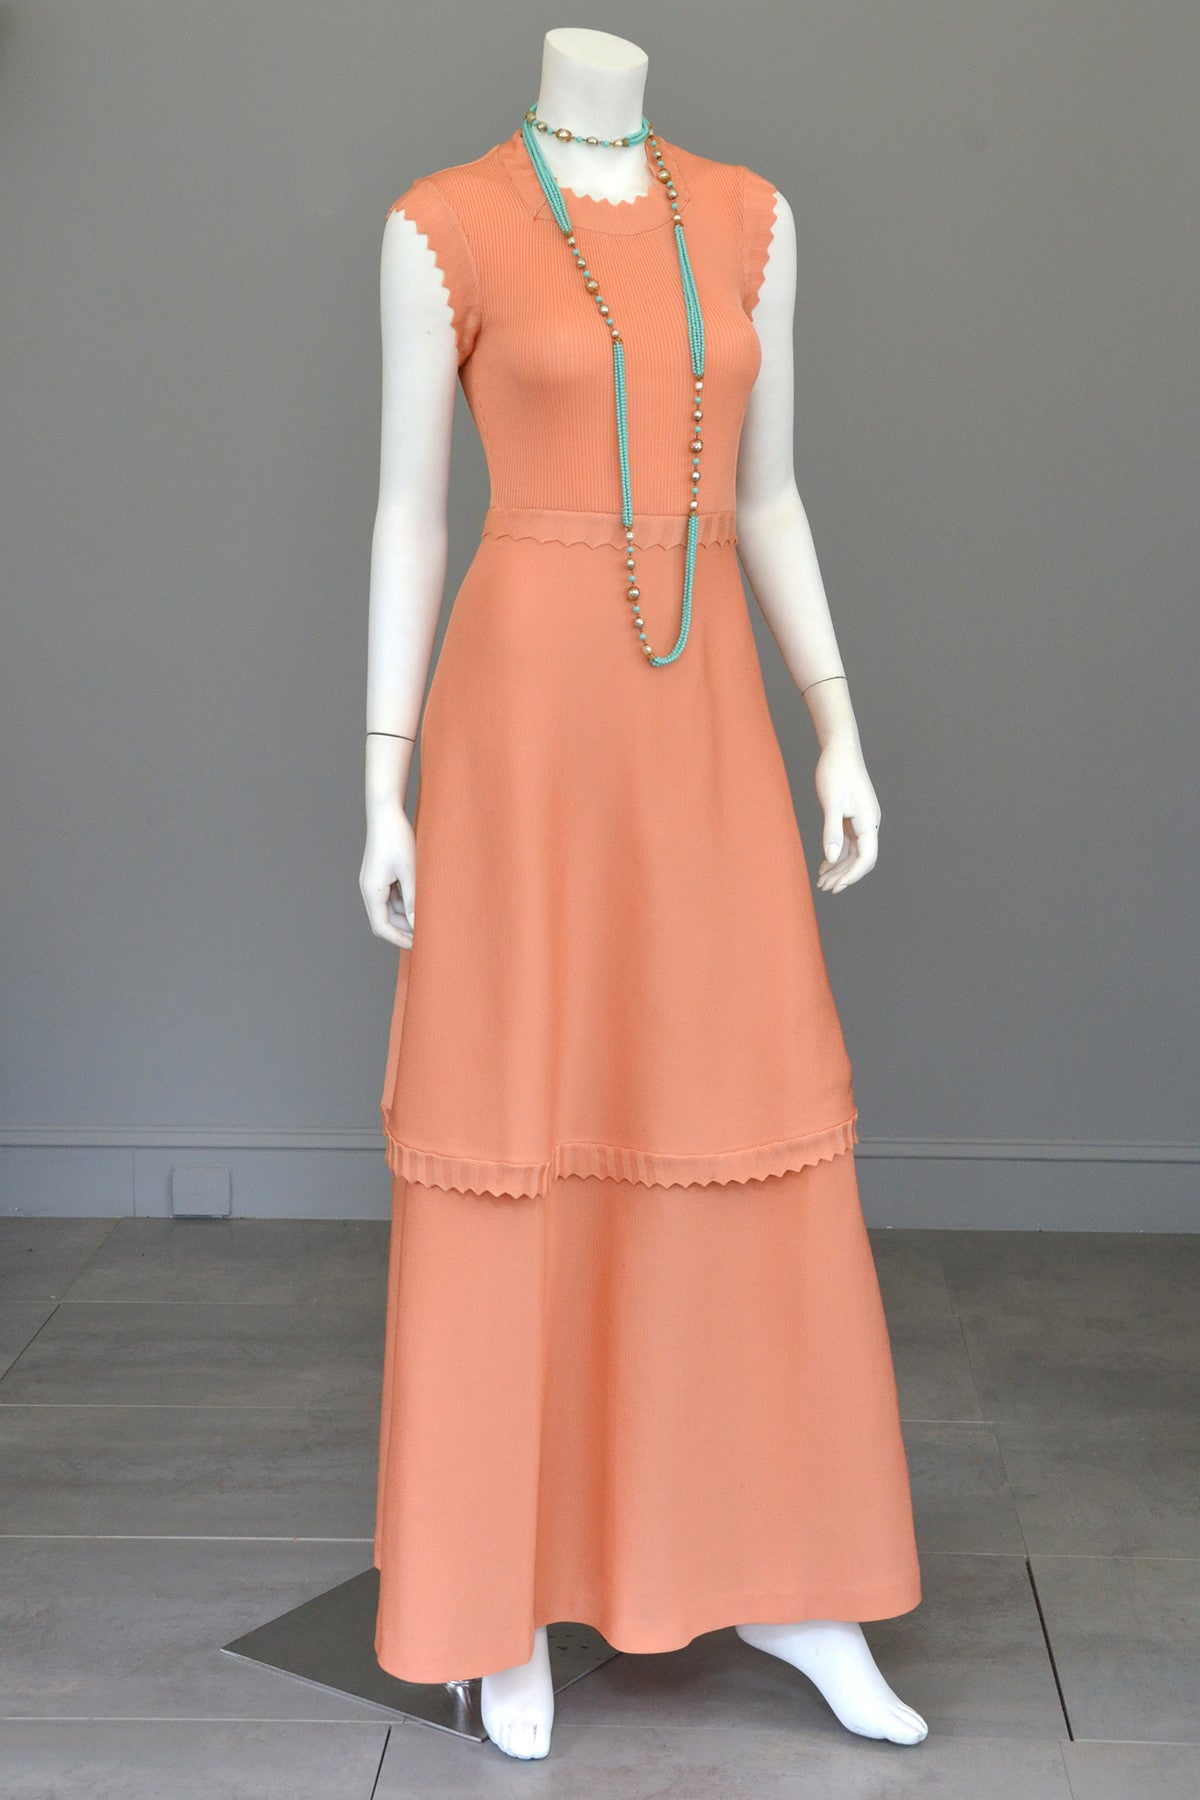 1970s Light Coral Italian Knit Dress with Long Peplum Skirt